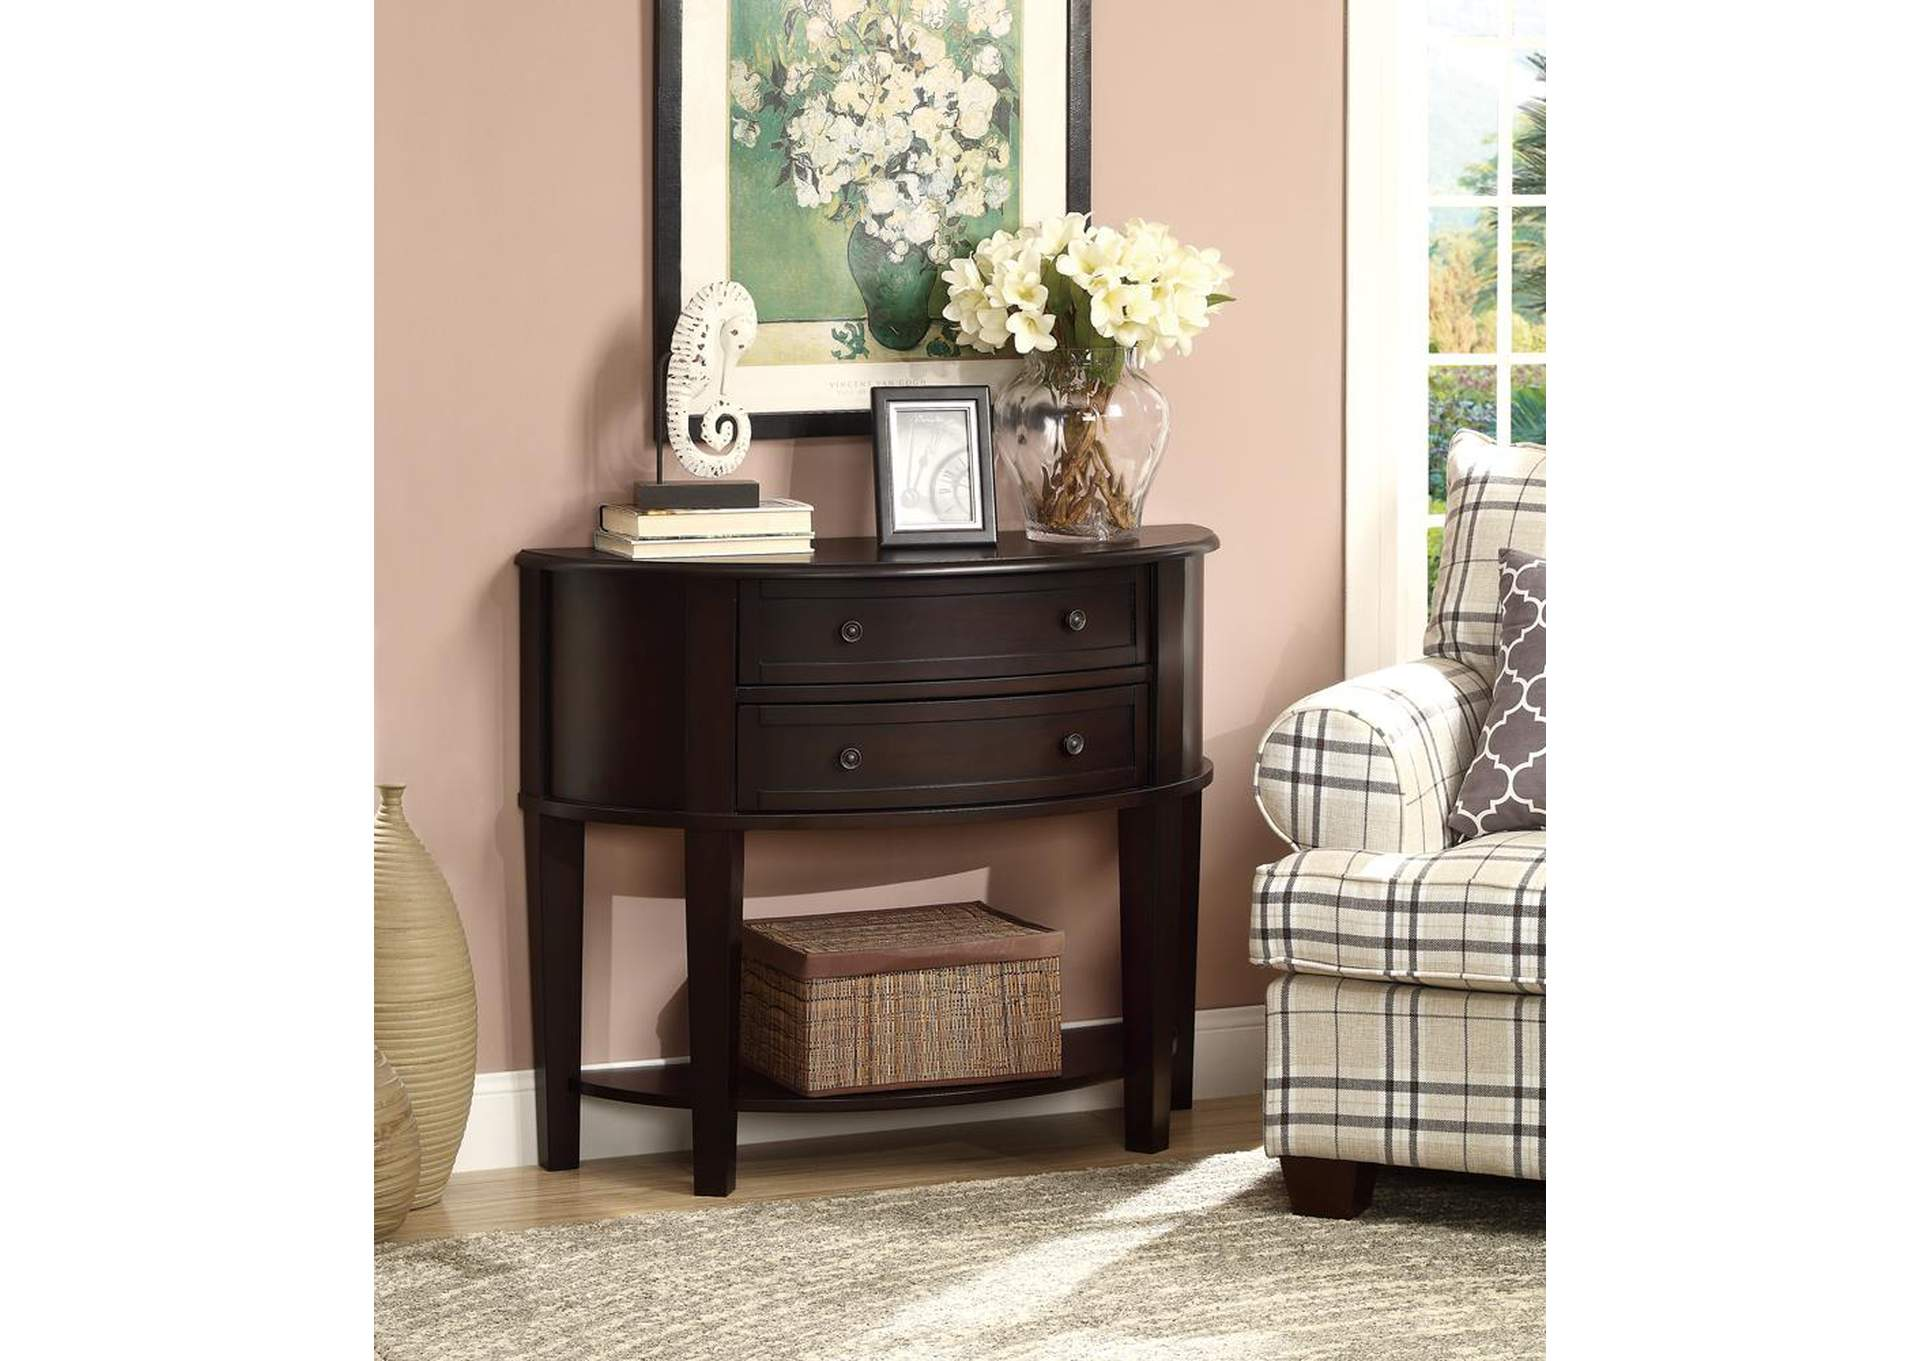 Cappuccino Casual Cappuccino Console Table,Coaster Furniture